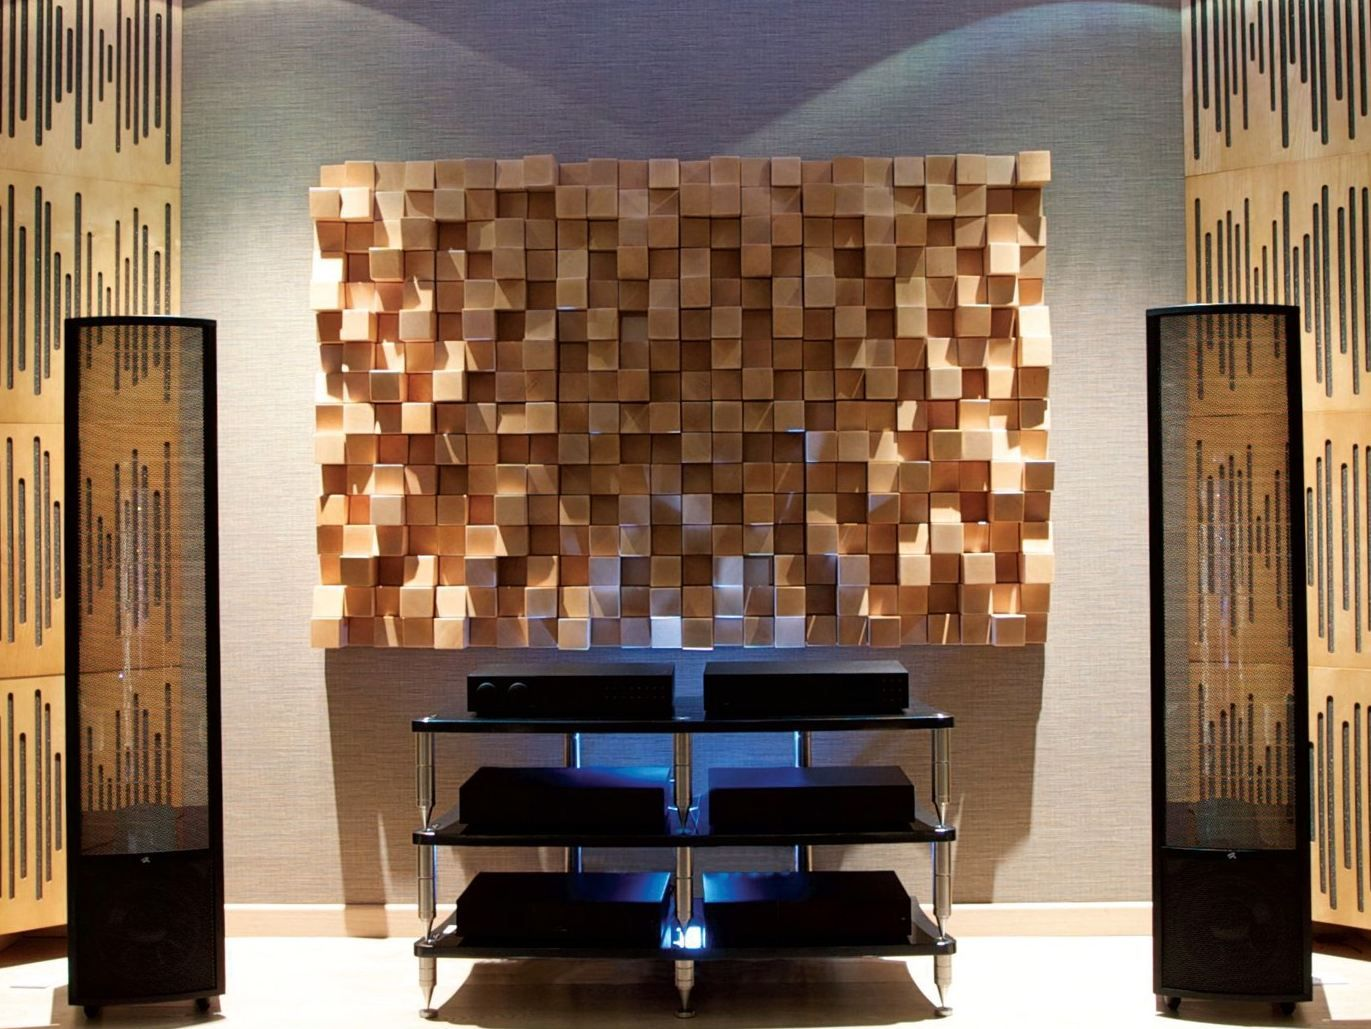 Decorative Acoustic Tiles Mdf Decorative Acoustical Panel Multifuser Wood 64Vicoustic